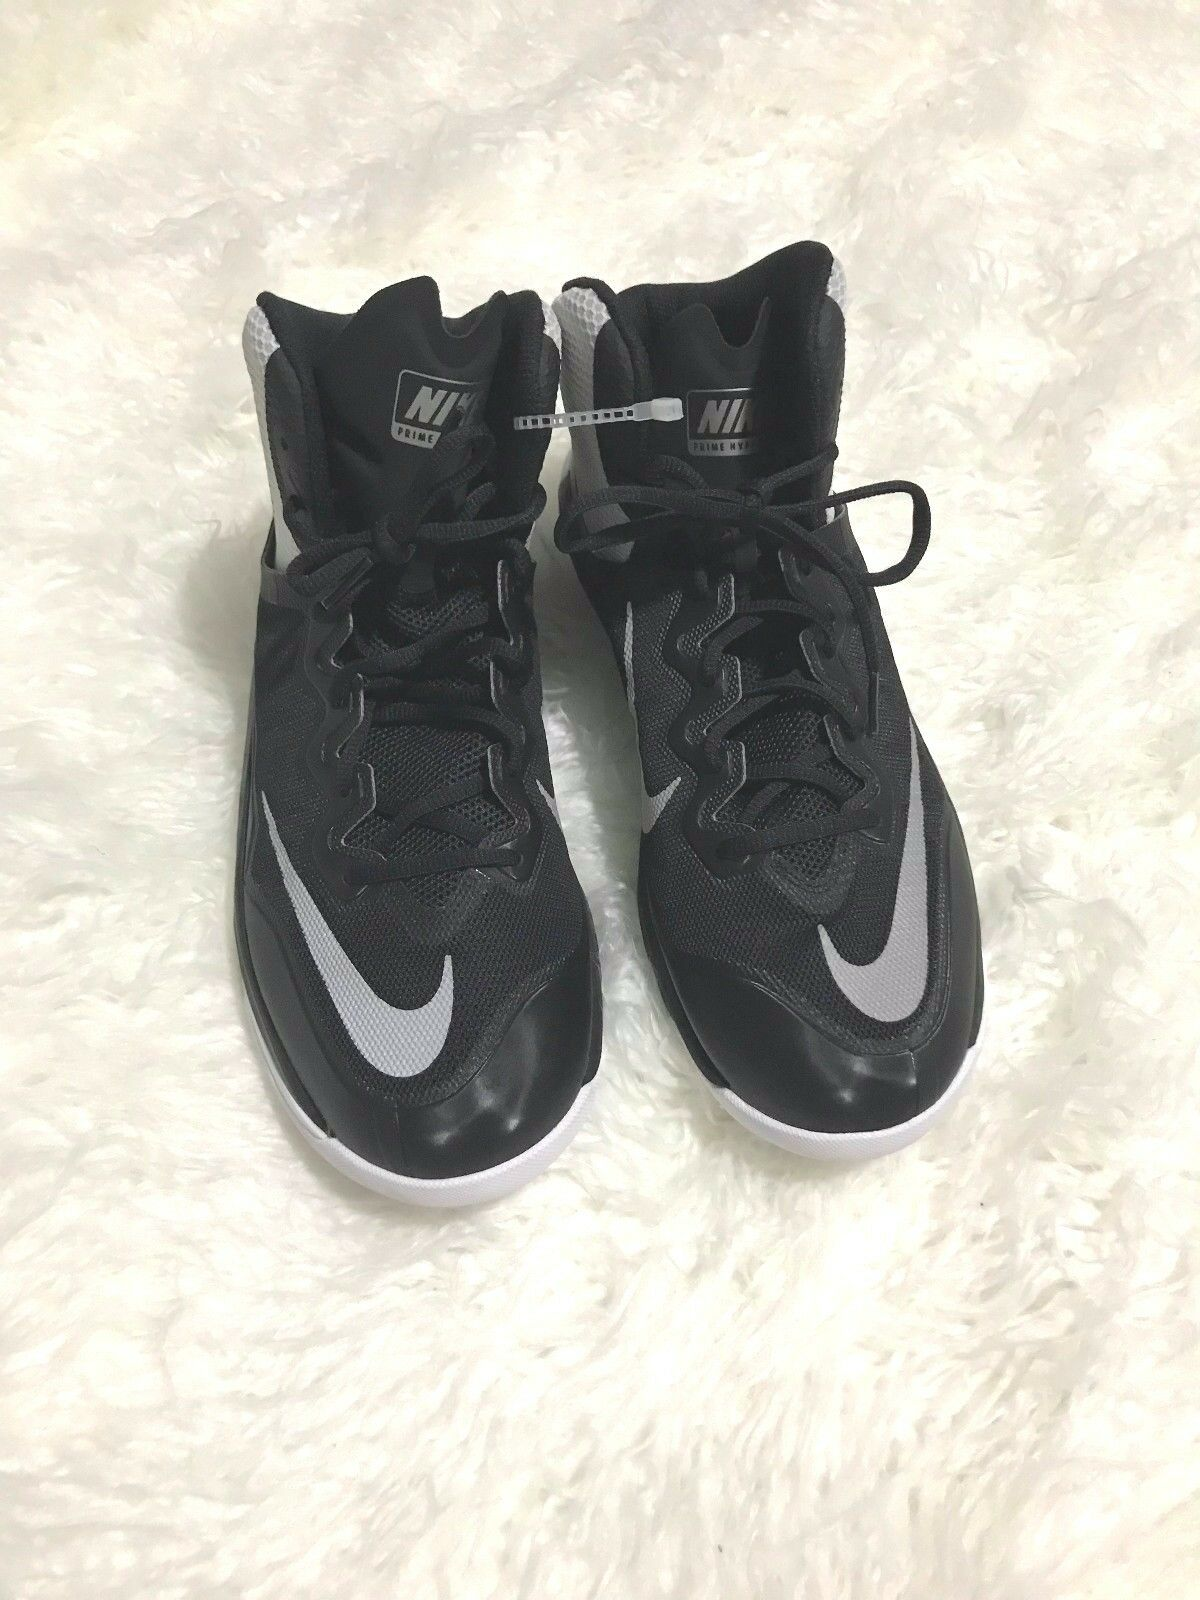 Nike Mens Prime Hype DF Basketball Shoes Black/silver/white Size 11